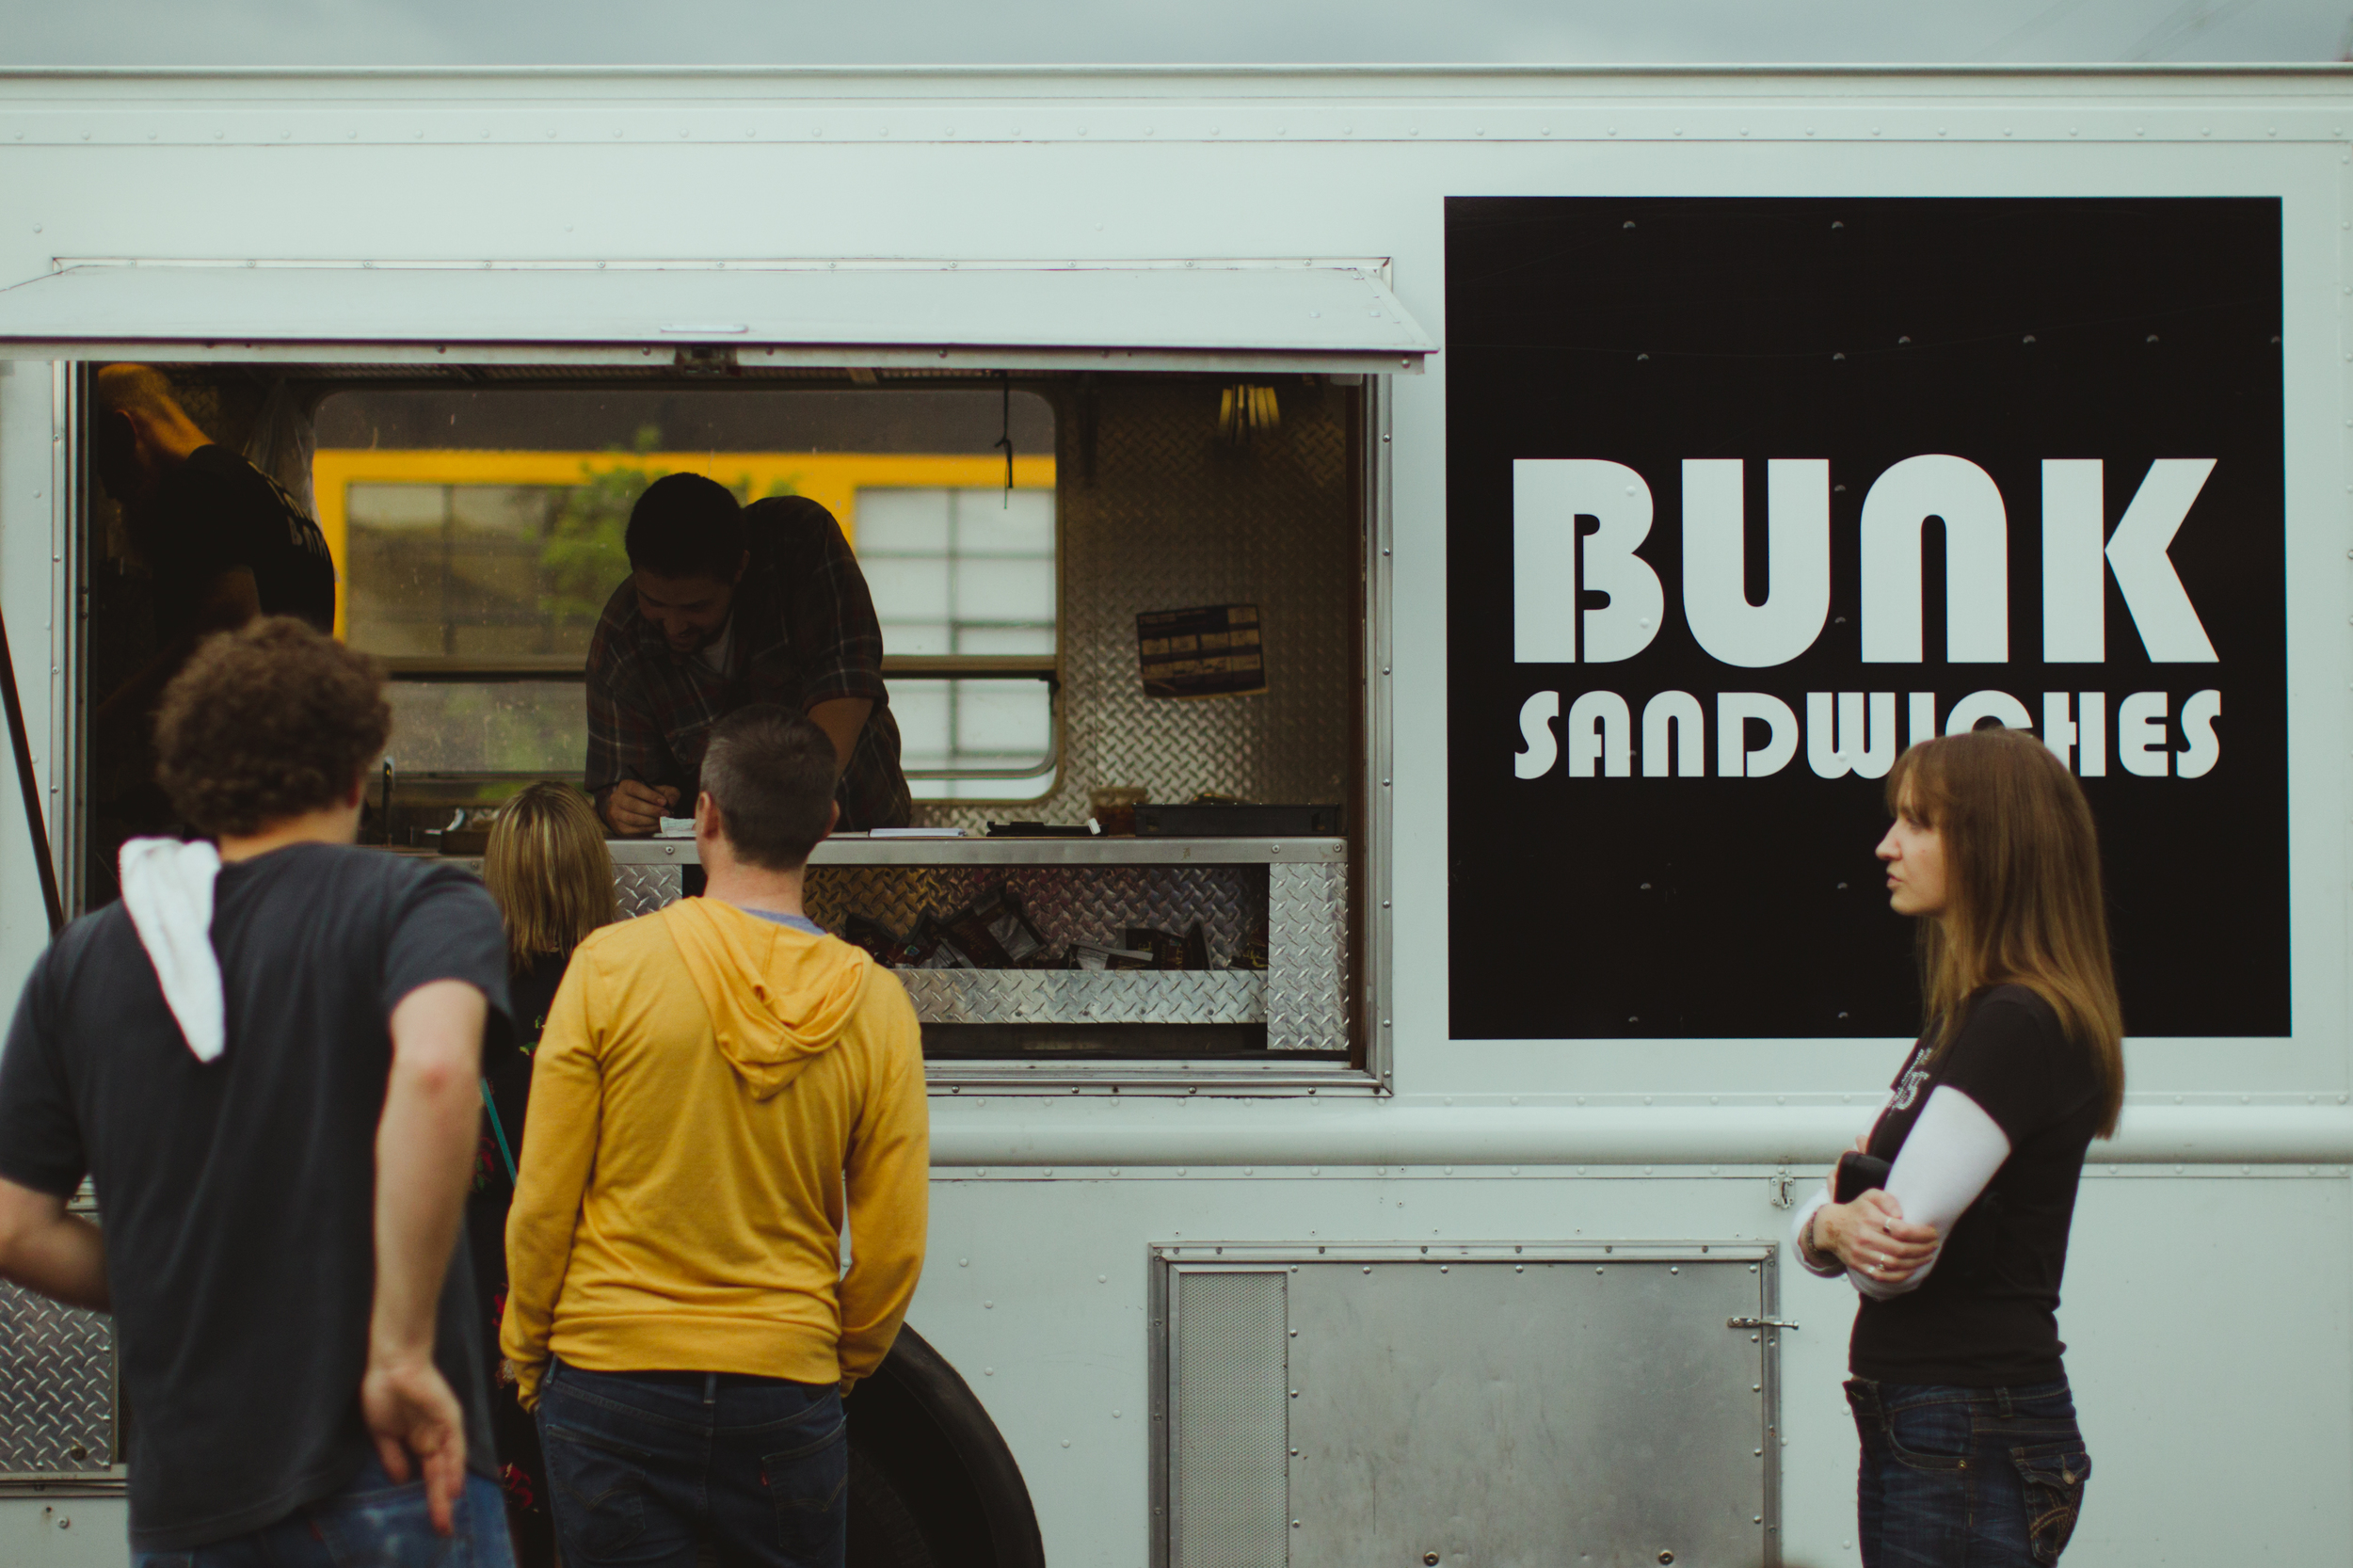 Bunk Sandwiches made an appearance slinging their signature eats.